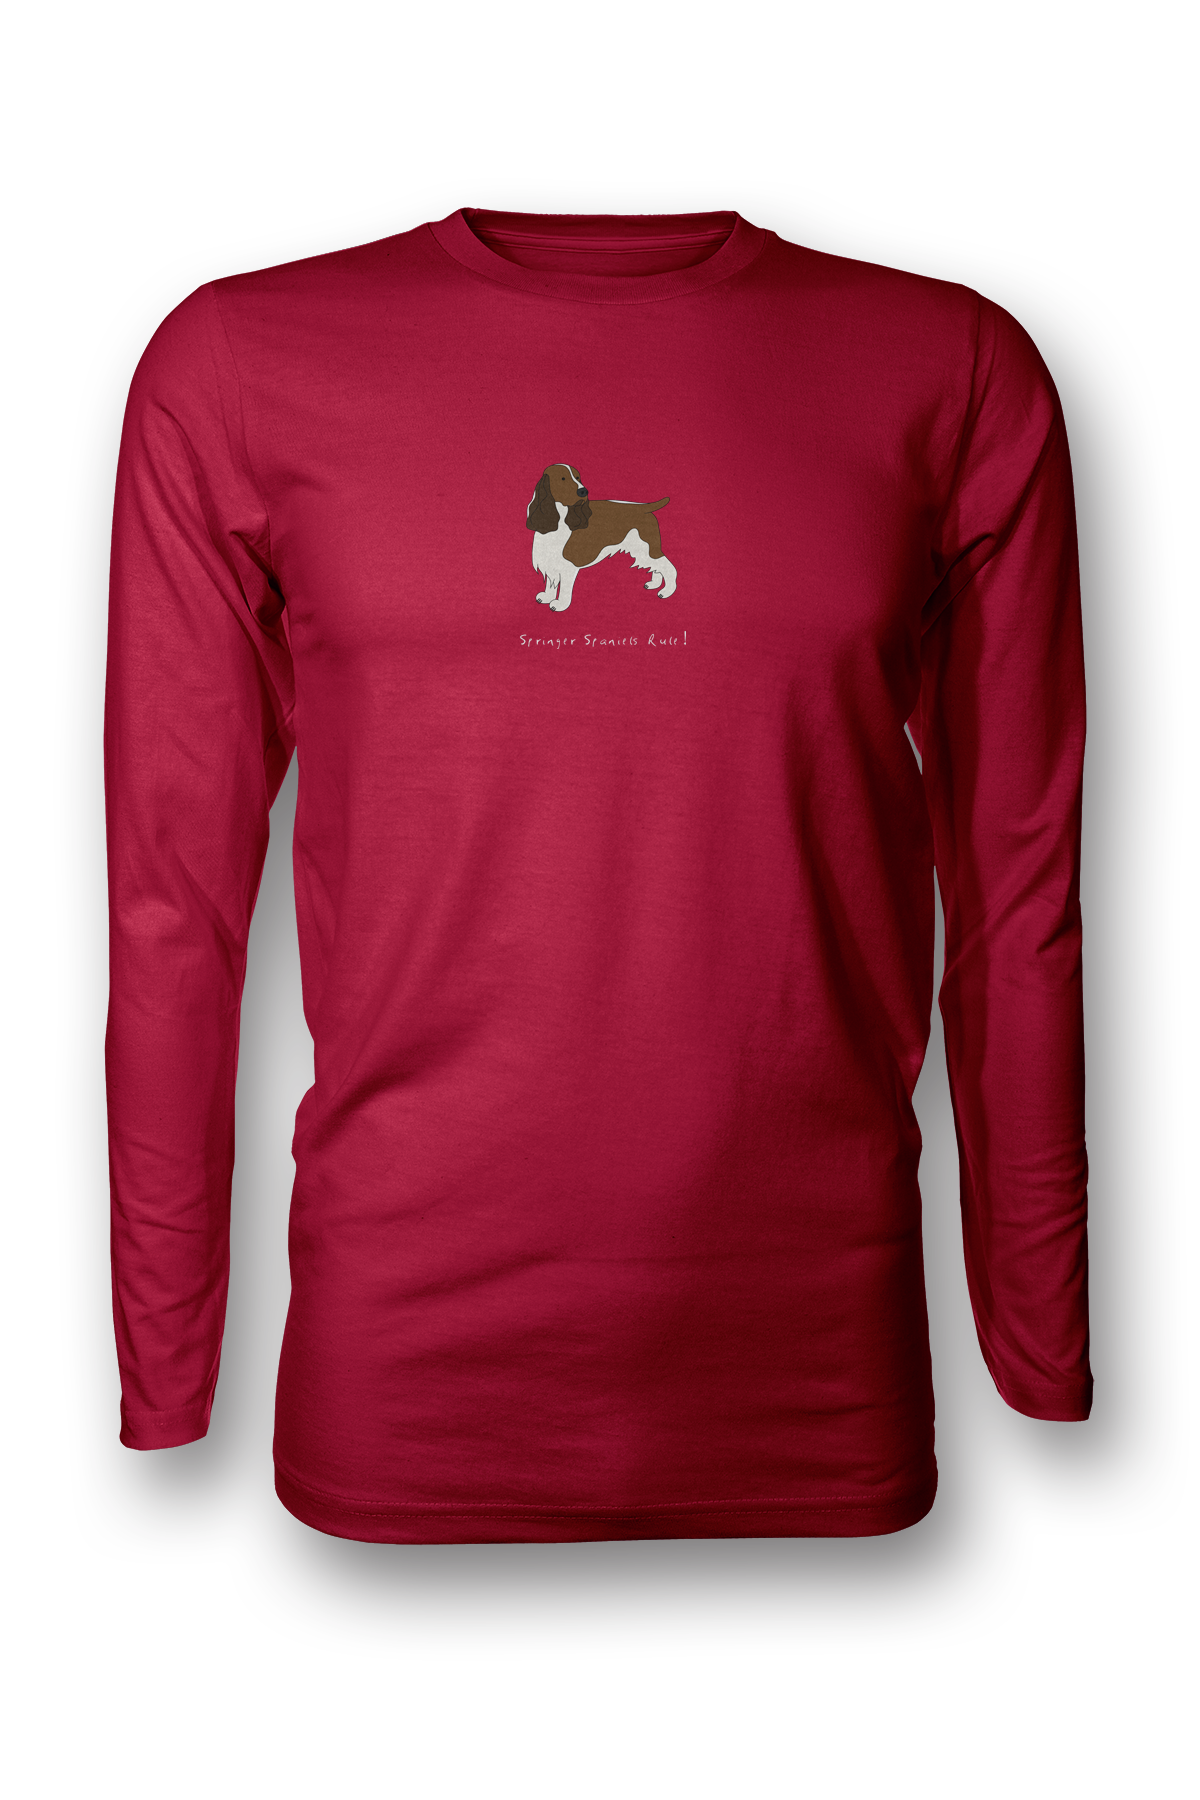 Mens Long Sleeve T-Shirt - Springer Spaniels Rule! Red